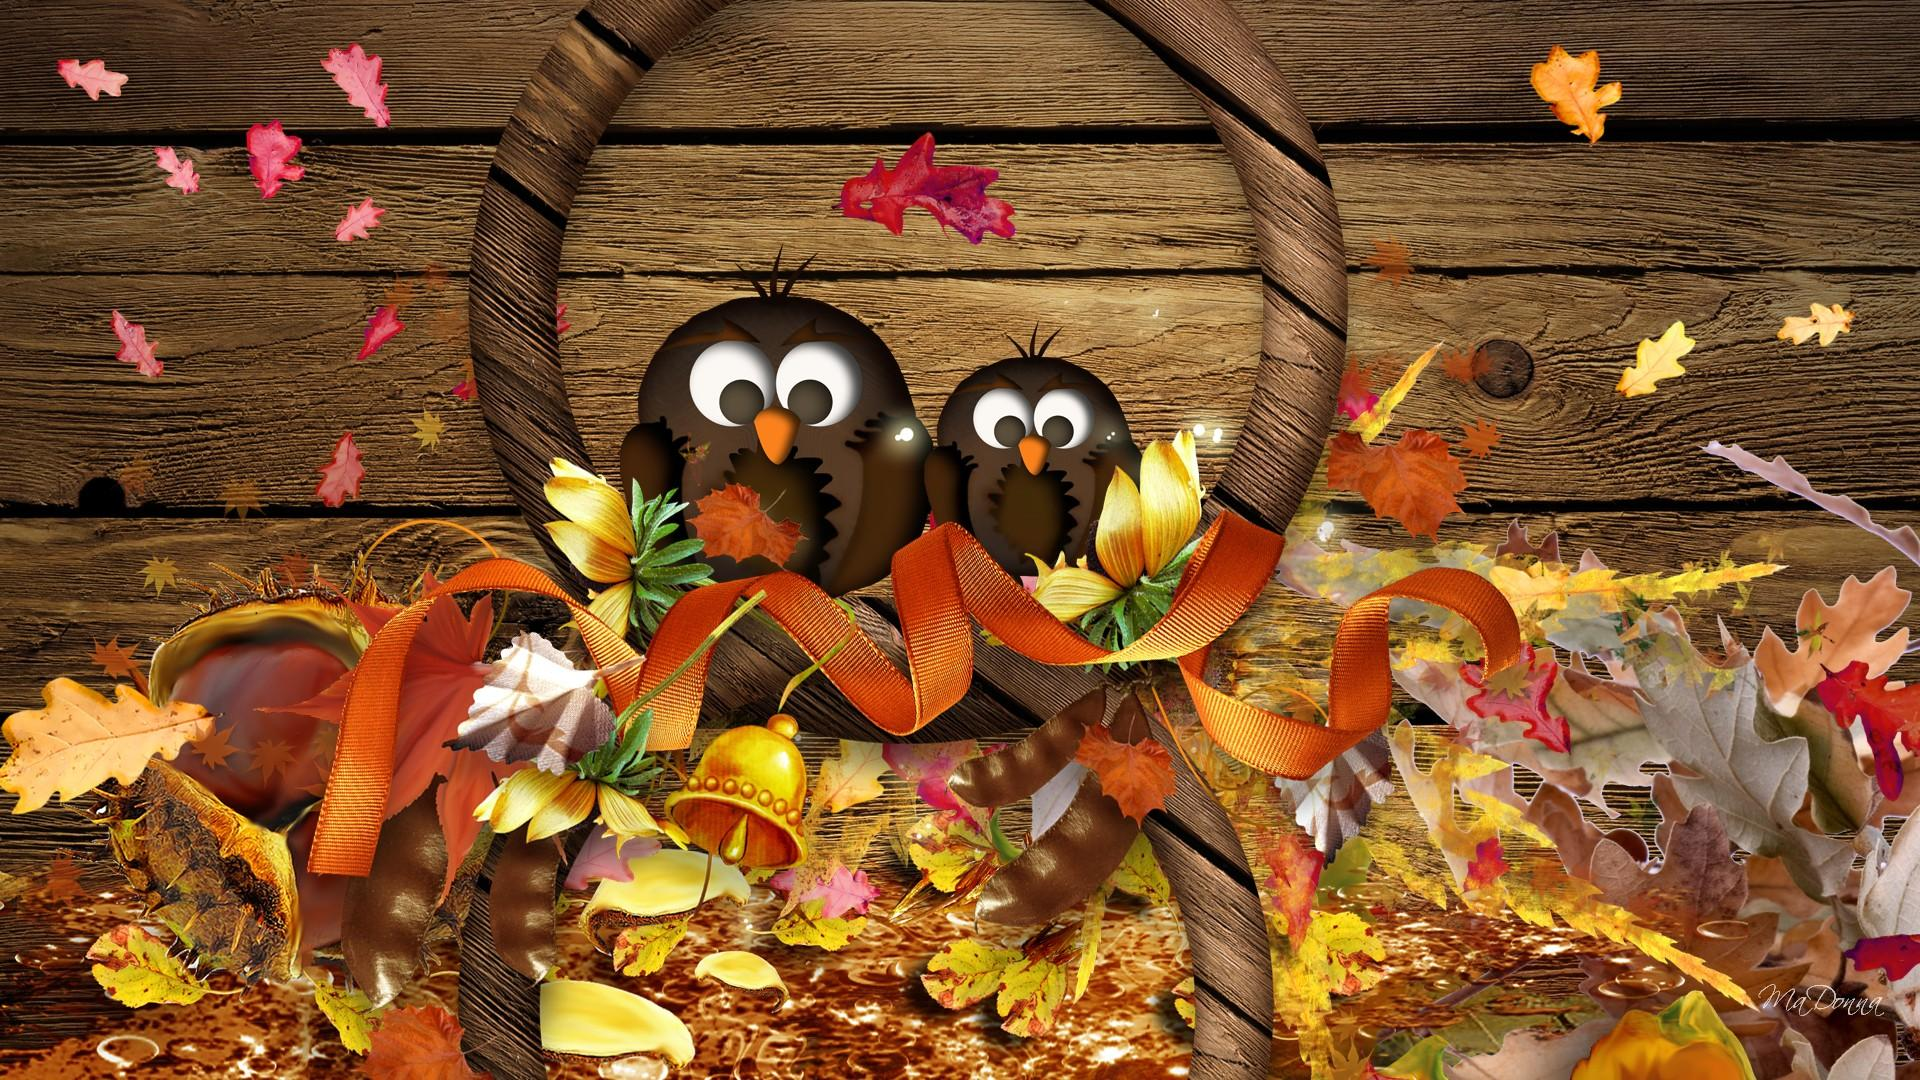 1920x1080 Thanksgiving Pictures Wallpapers Group (78+)